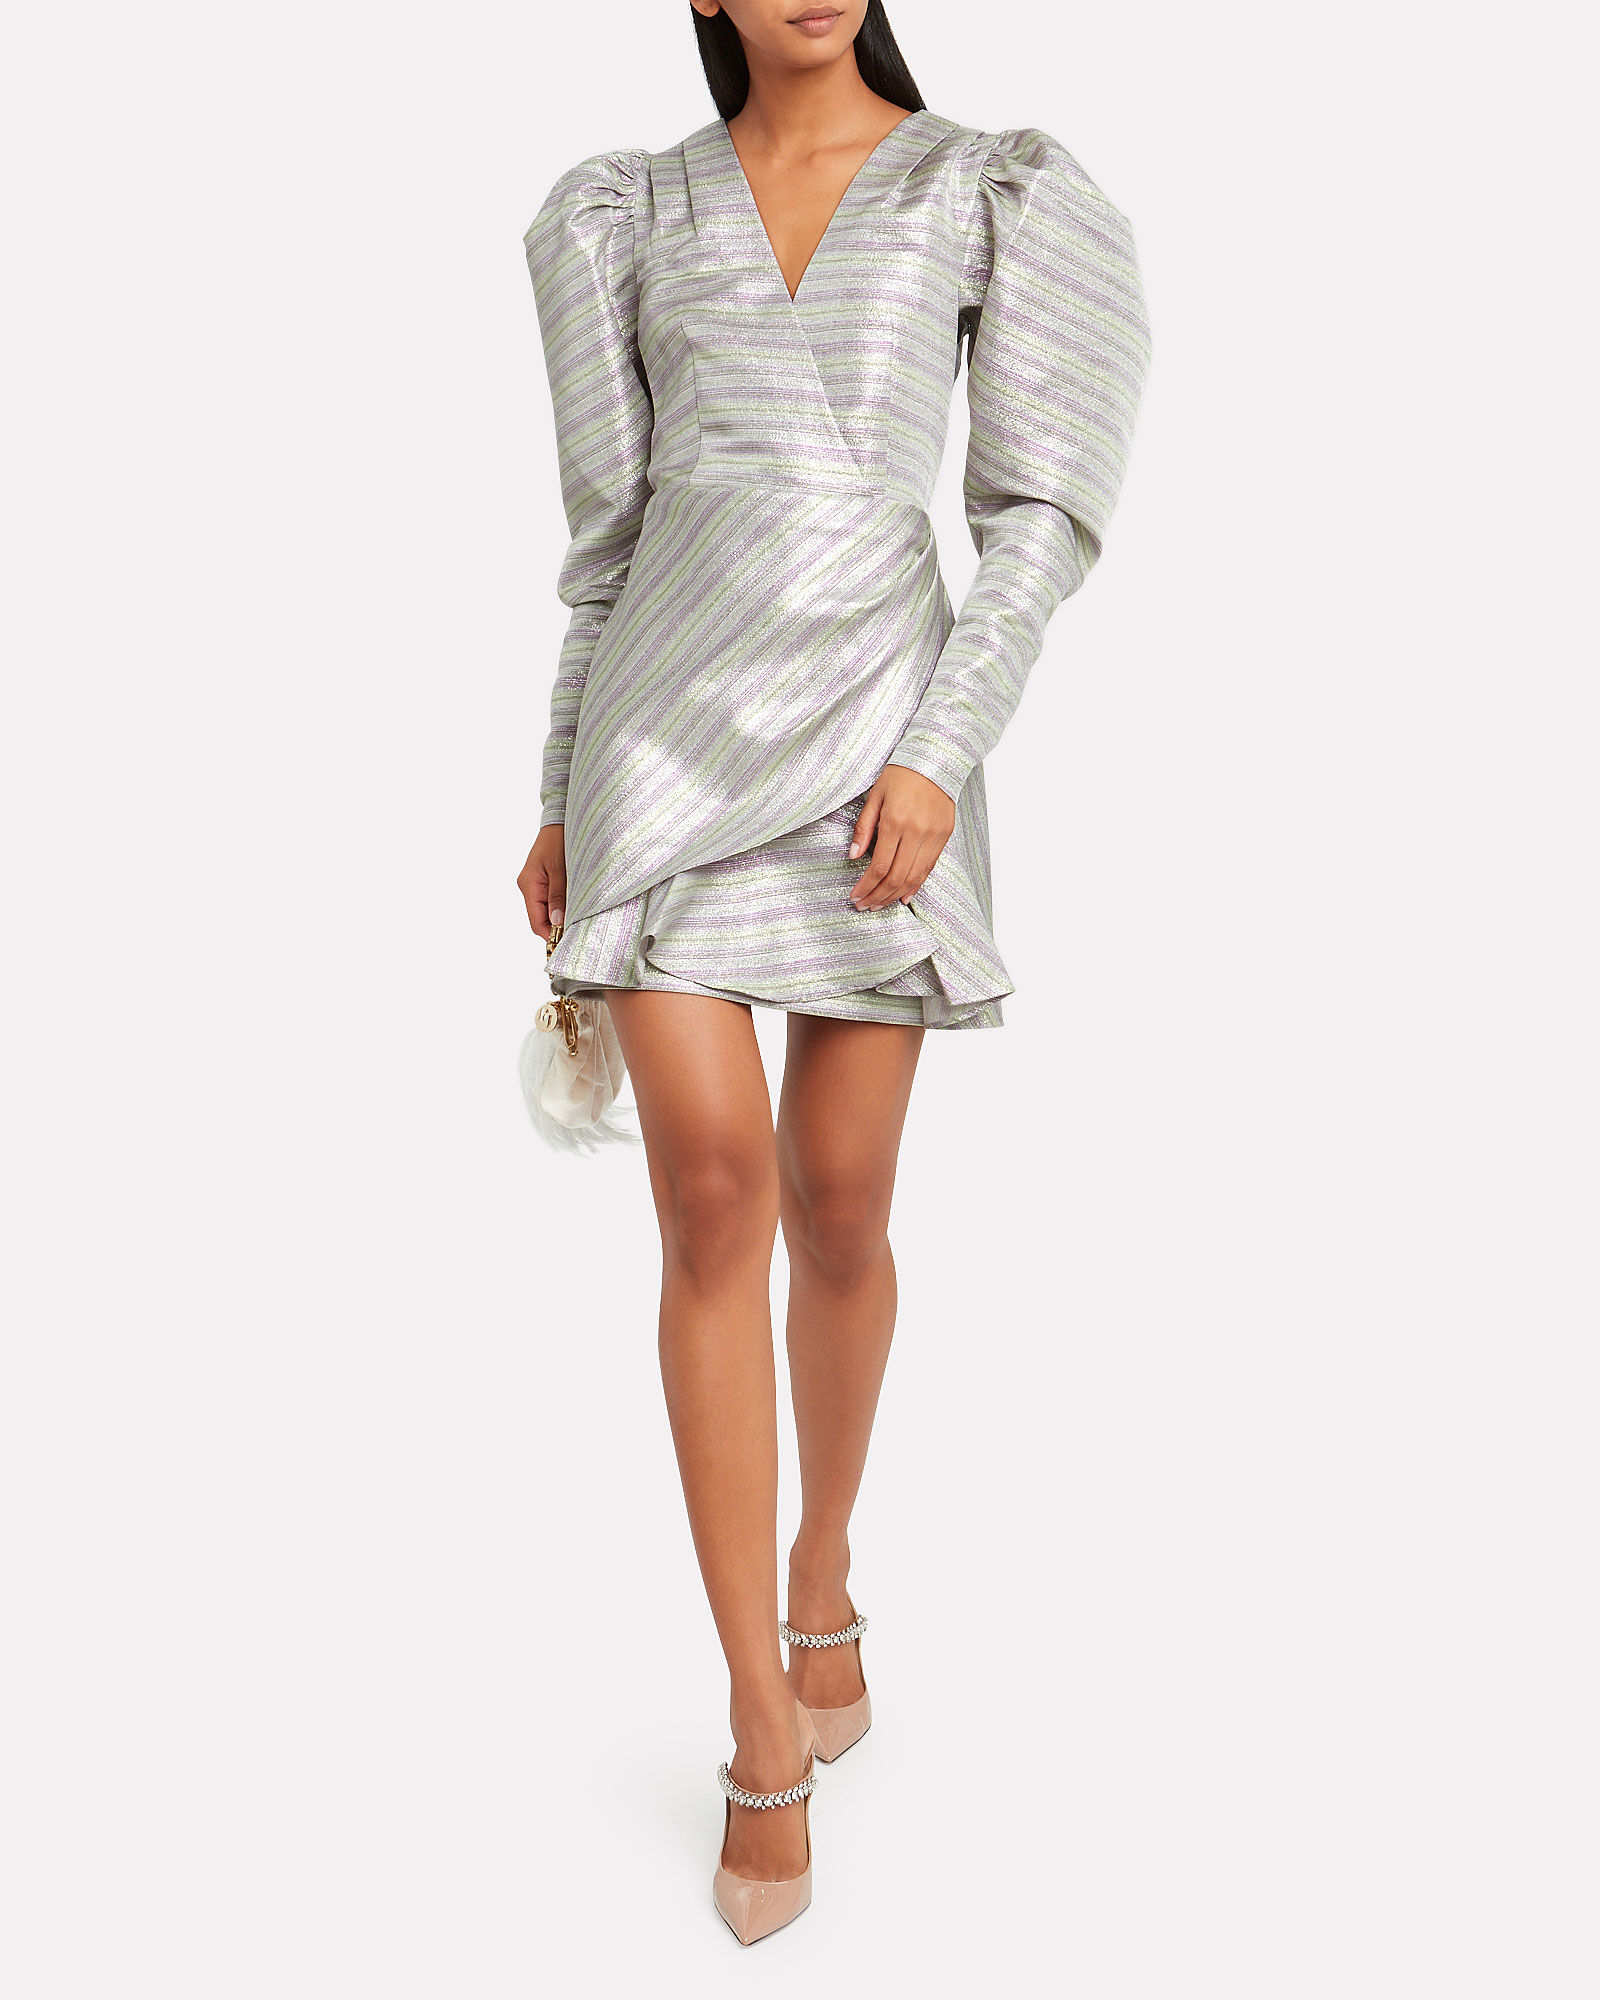 No. 24 Metallic Mini Dress, PURPLE-LT, hi-res